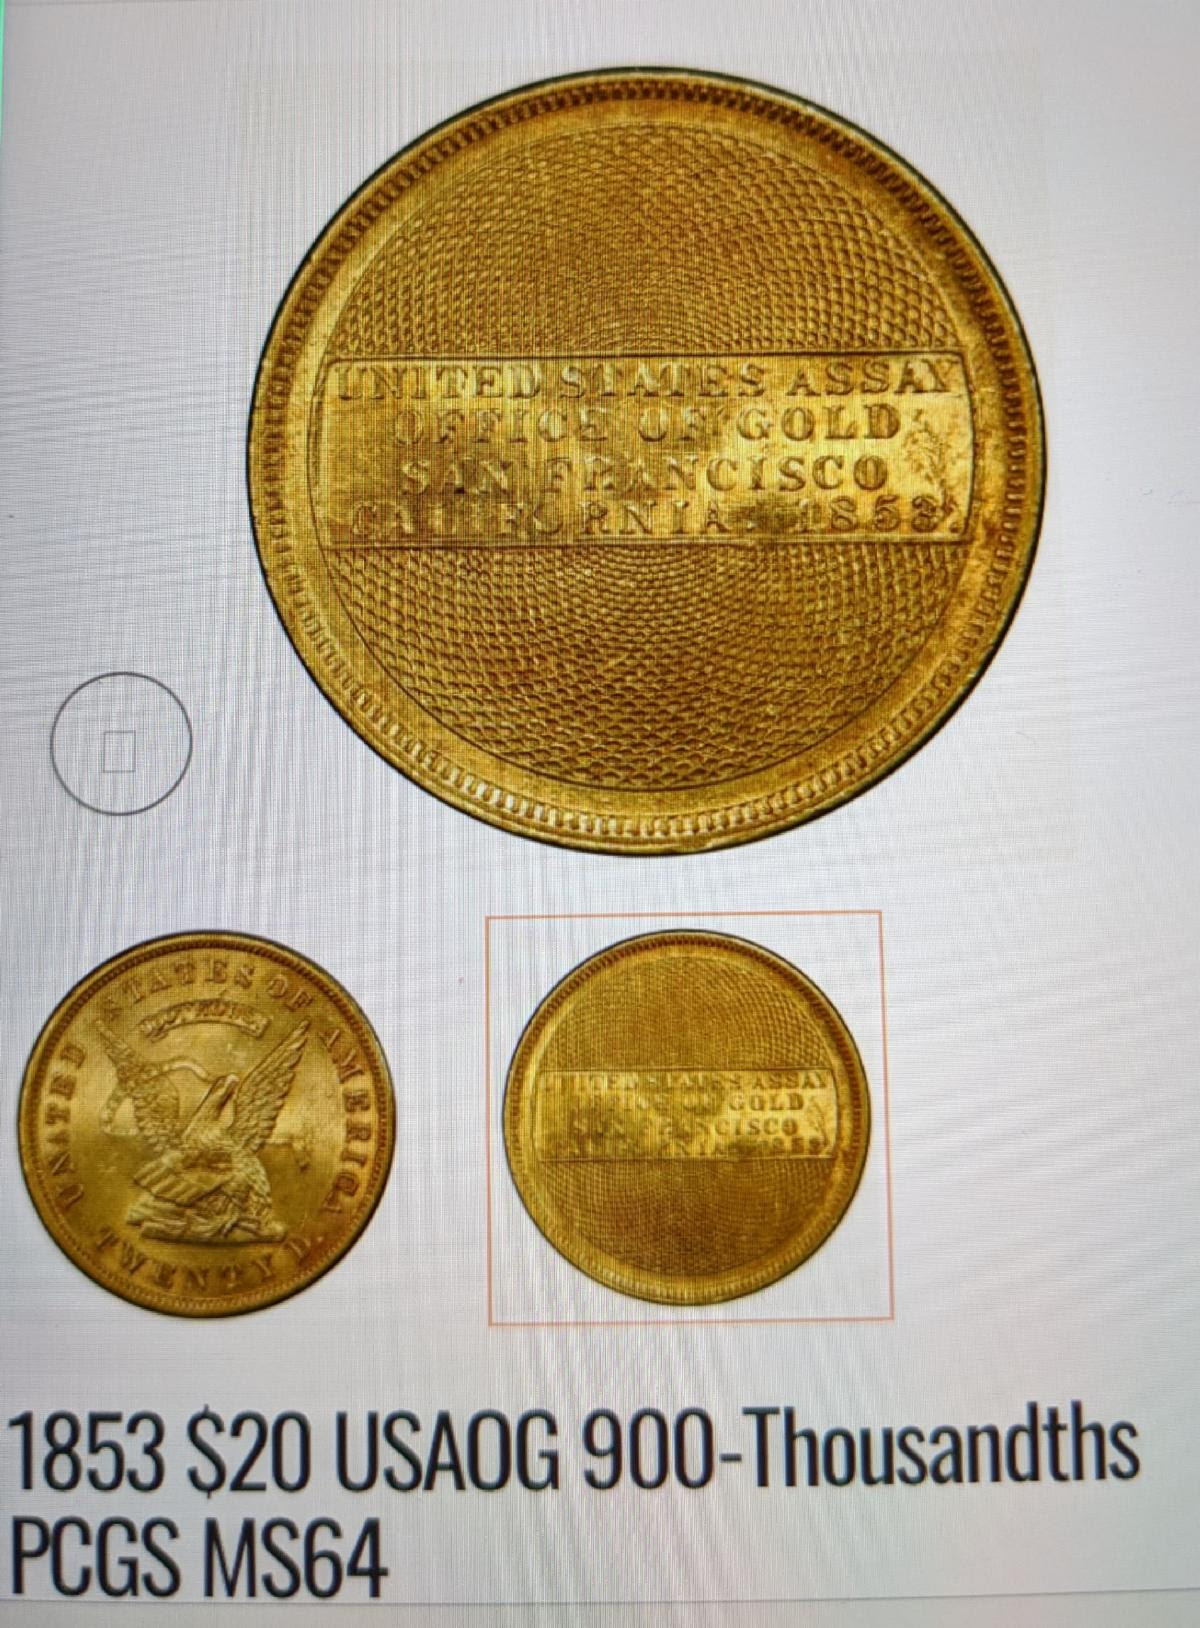 1853 $20 USAOG 900-Thousandths PCGS MS64. Image courtesy Numismatic Crime Information Center, Doug Davis